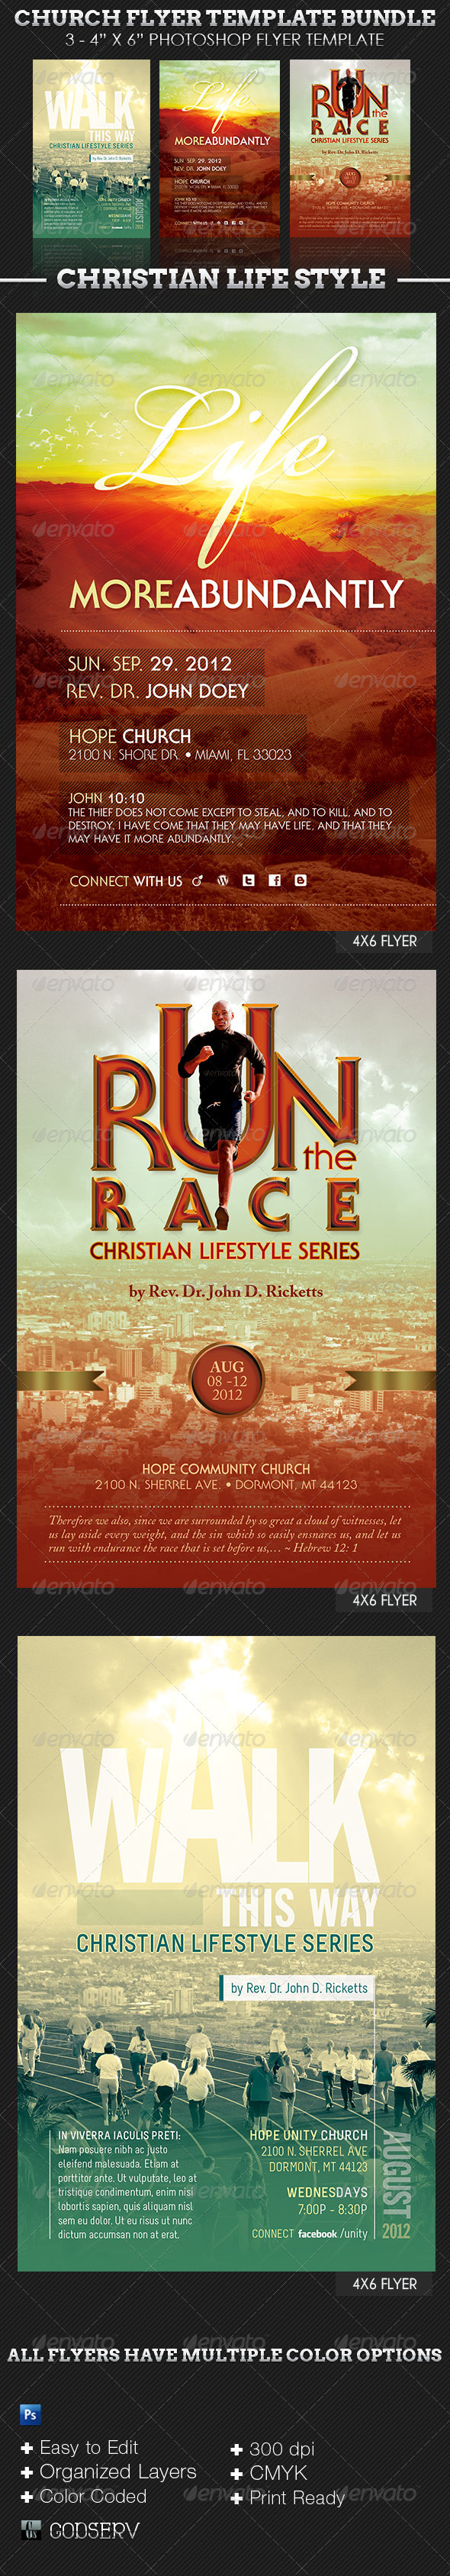 Christian Lifestyle Church Flyer Template Bundle - Church Flyers